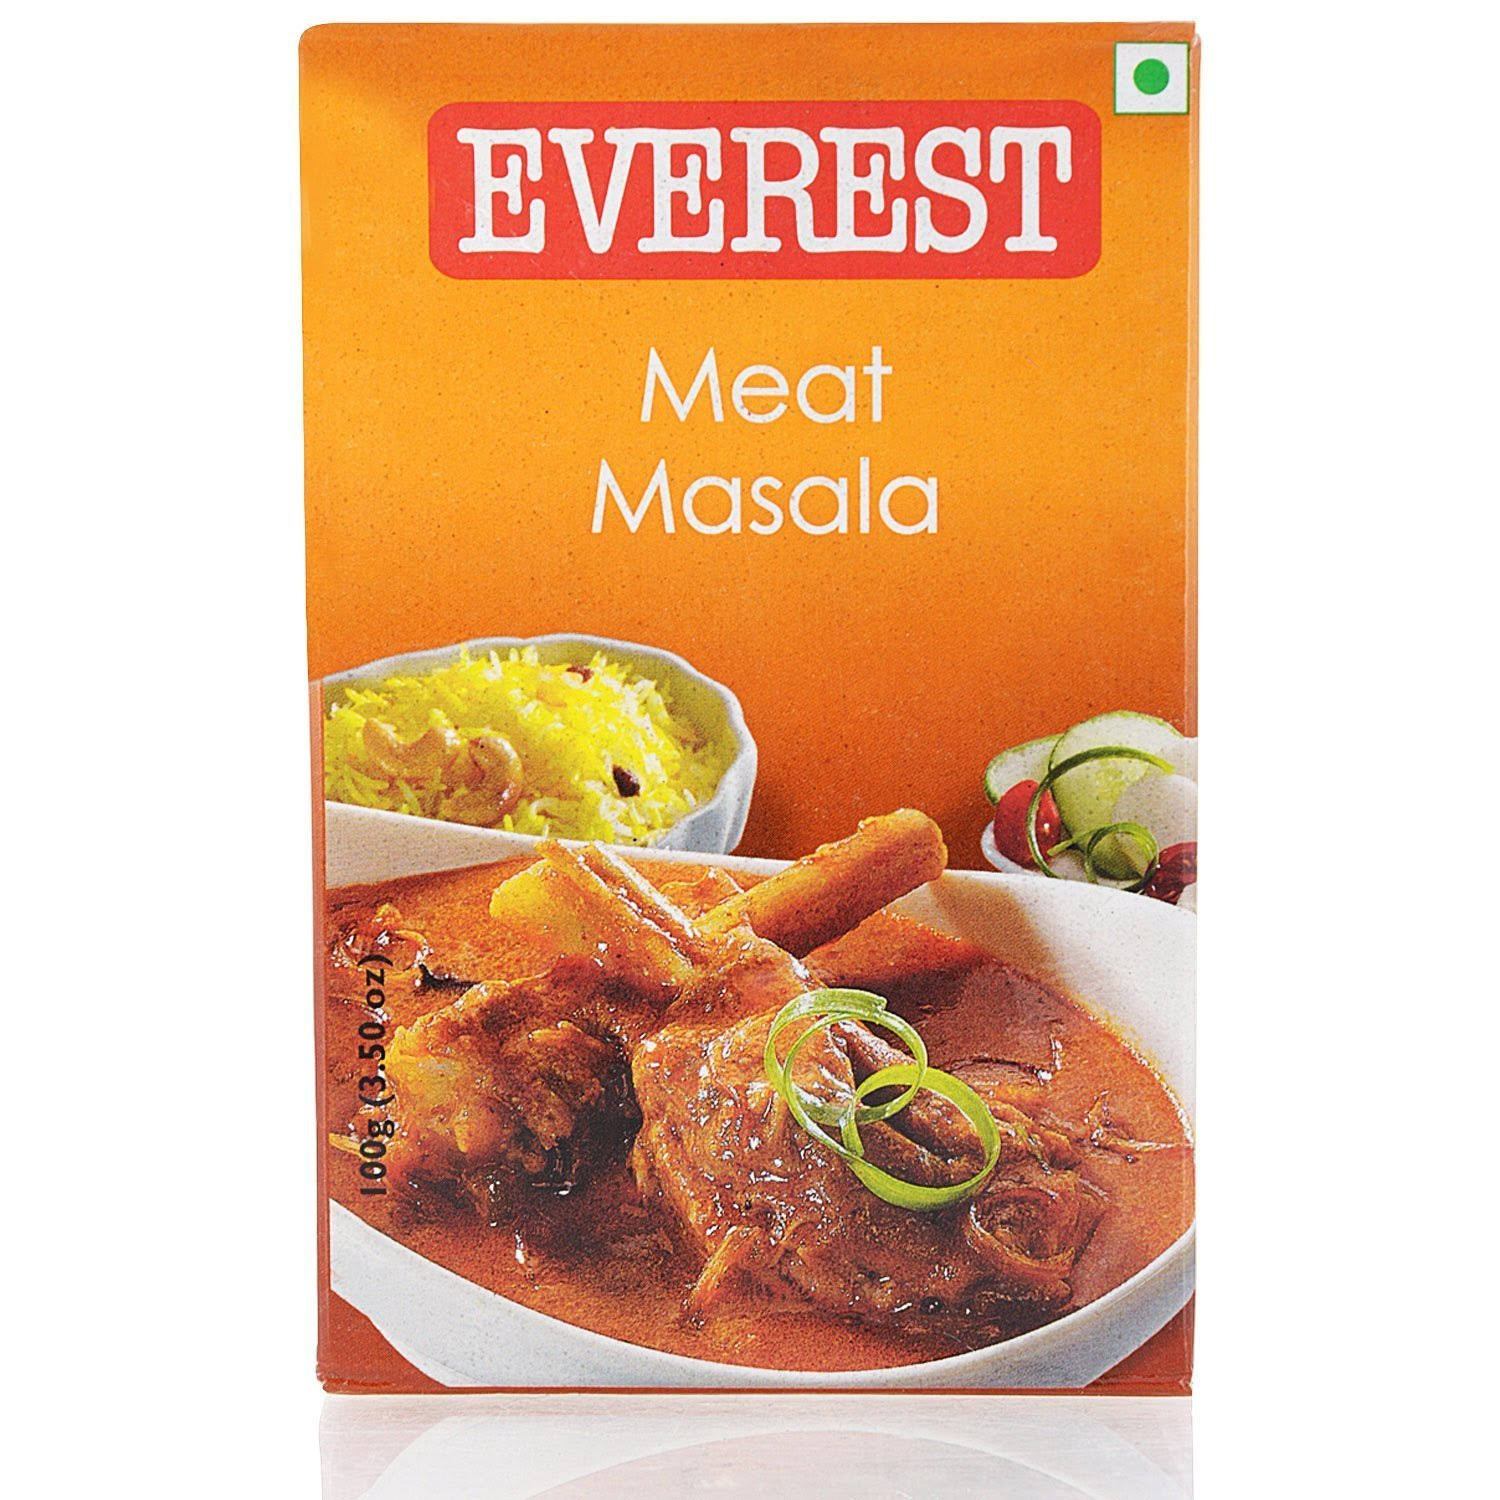 Everest Meat Masala Spice Mix